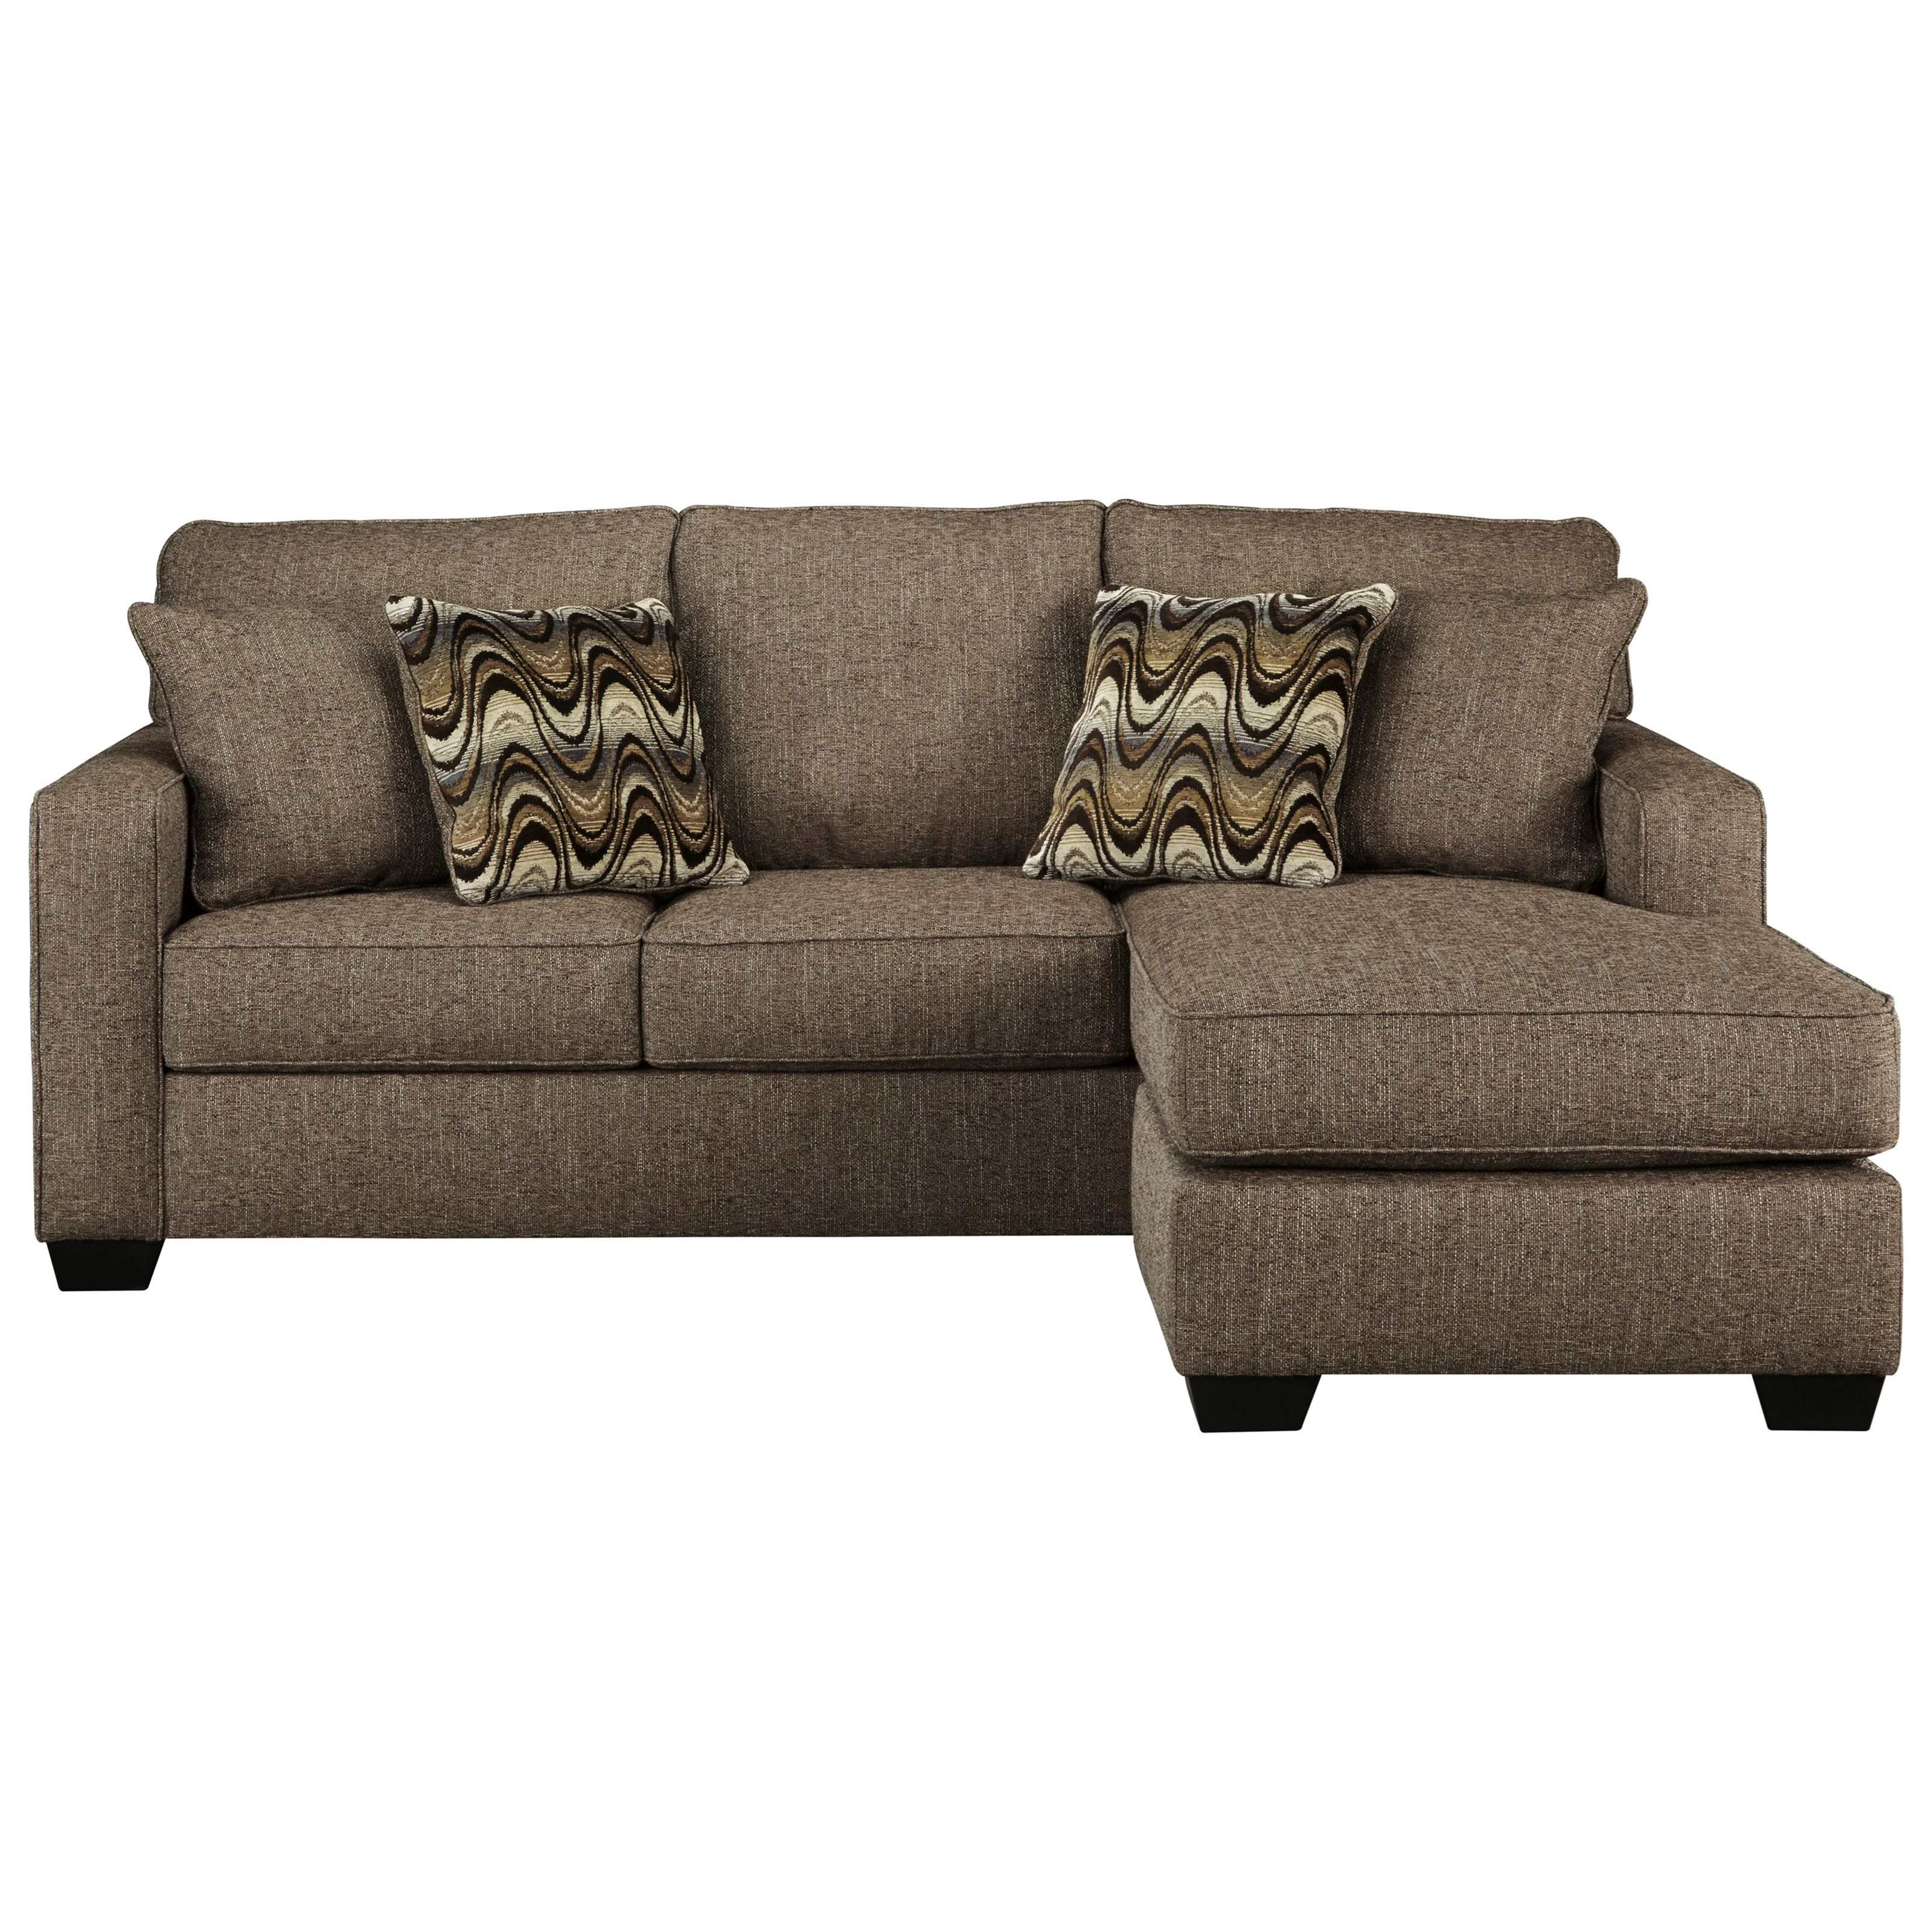 Benchcraft by ashley tanacra contemporary sofa chaise in for Ashley brown sofa chaise